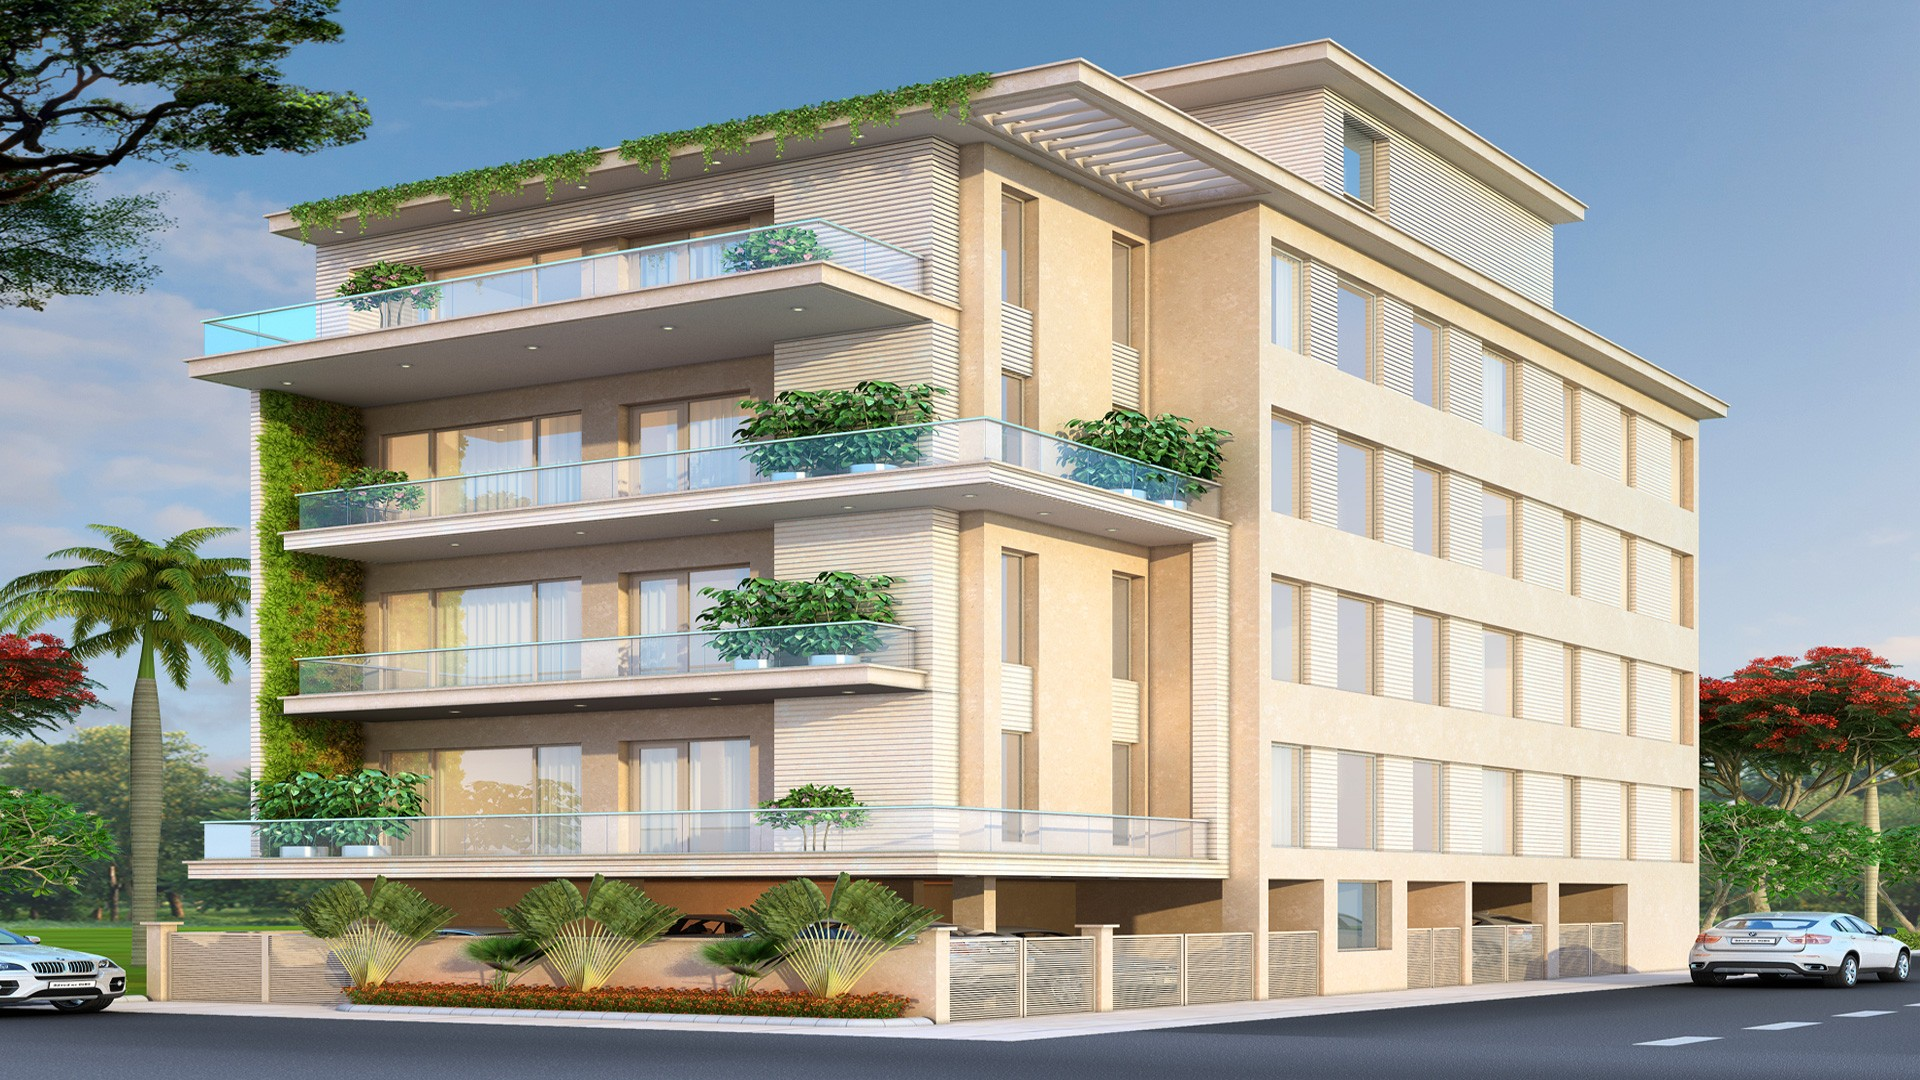 Beautifuly designed building with Green plants in the balconies built by Florence Homes in East of kailash